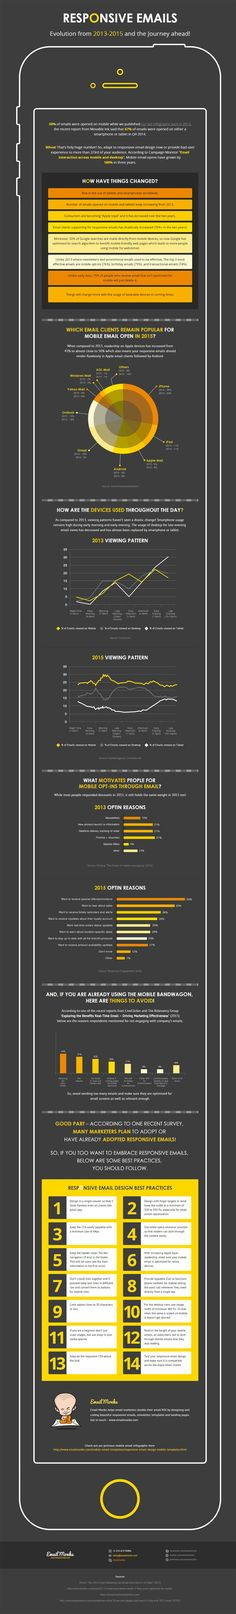 Monks share a statistical infographic on why you should adopt mobile email design for your next email marketing campaign. Choose mobile friendly email design now! Inbound Marketing, Marketing Technology, Marketing Automation, Digital Marketing Strategy, Email Marketing, Internet Marketing, Marketing Articles, Affiliate Marketing, Responsive Email